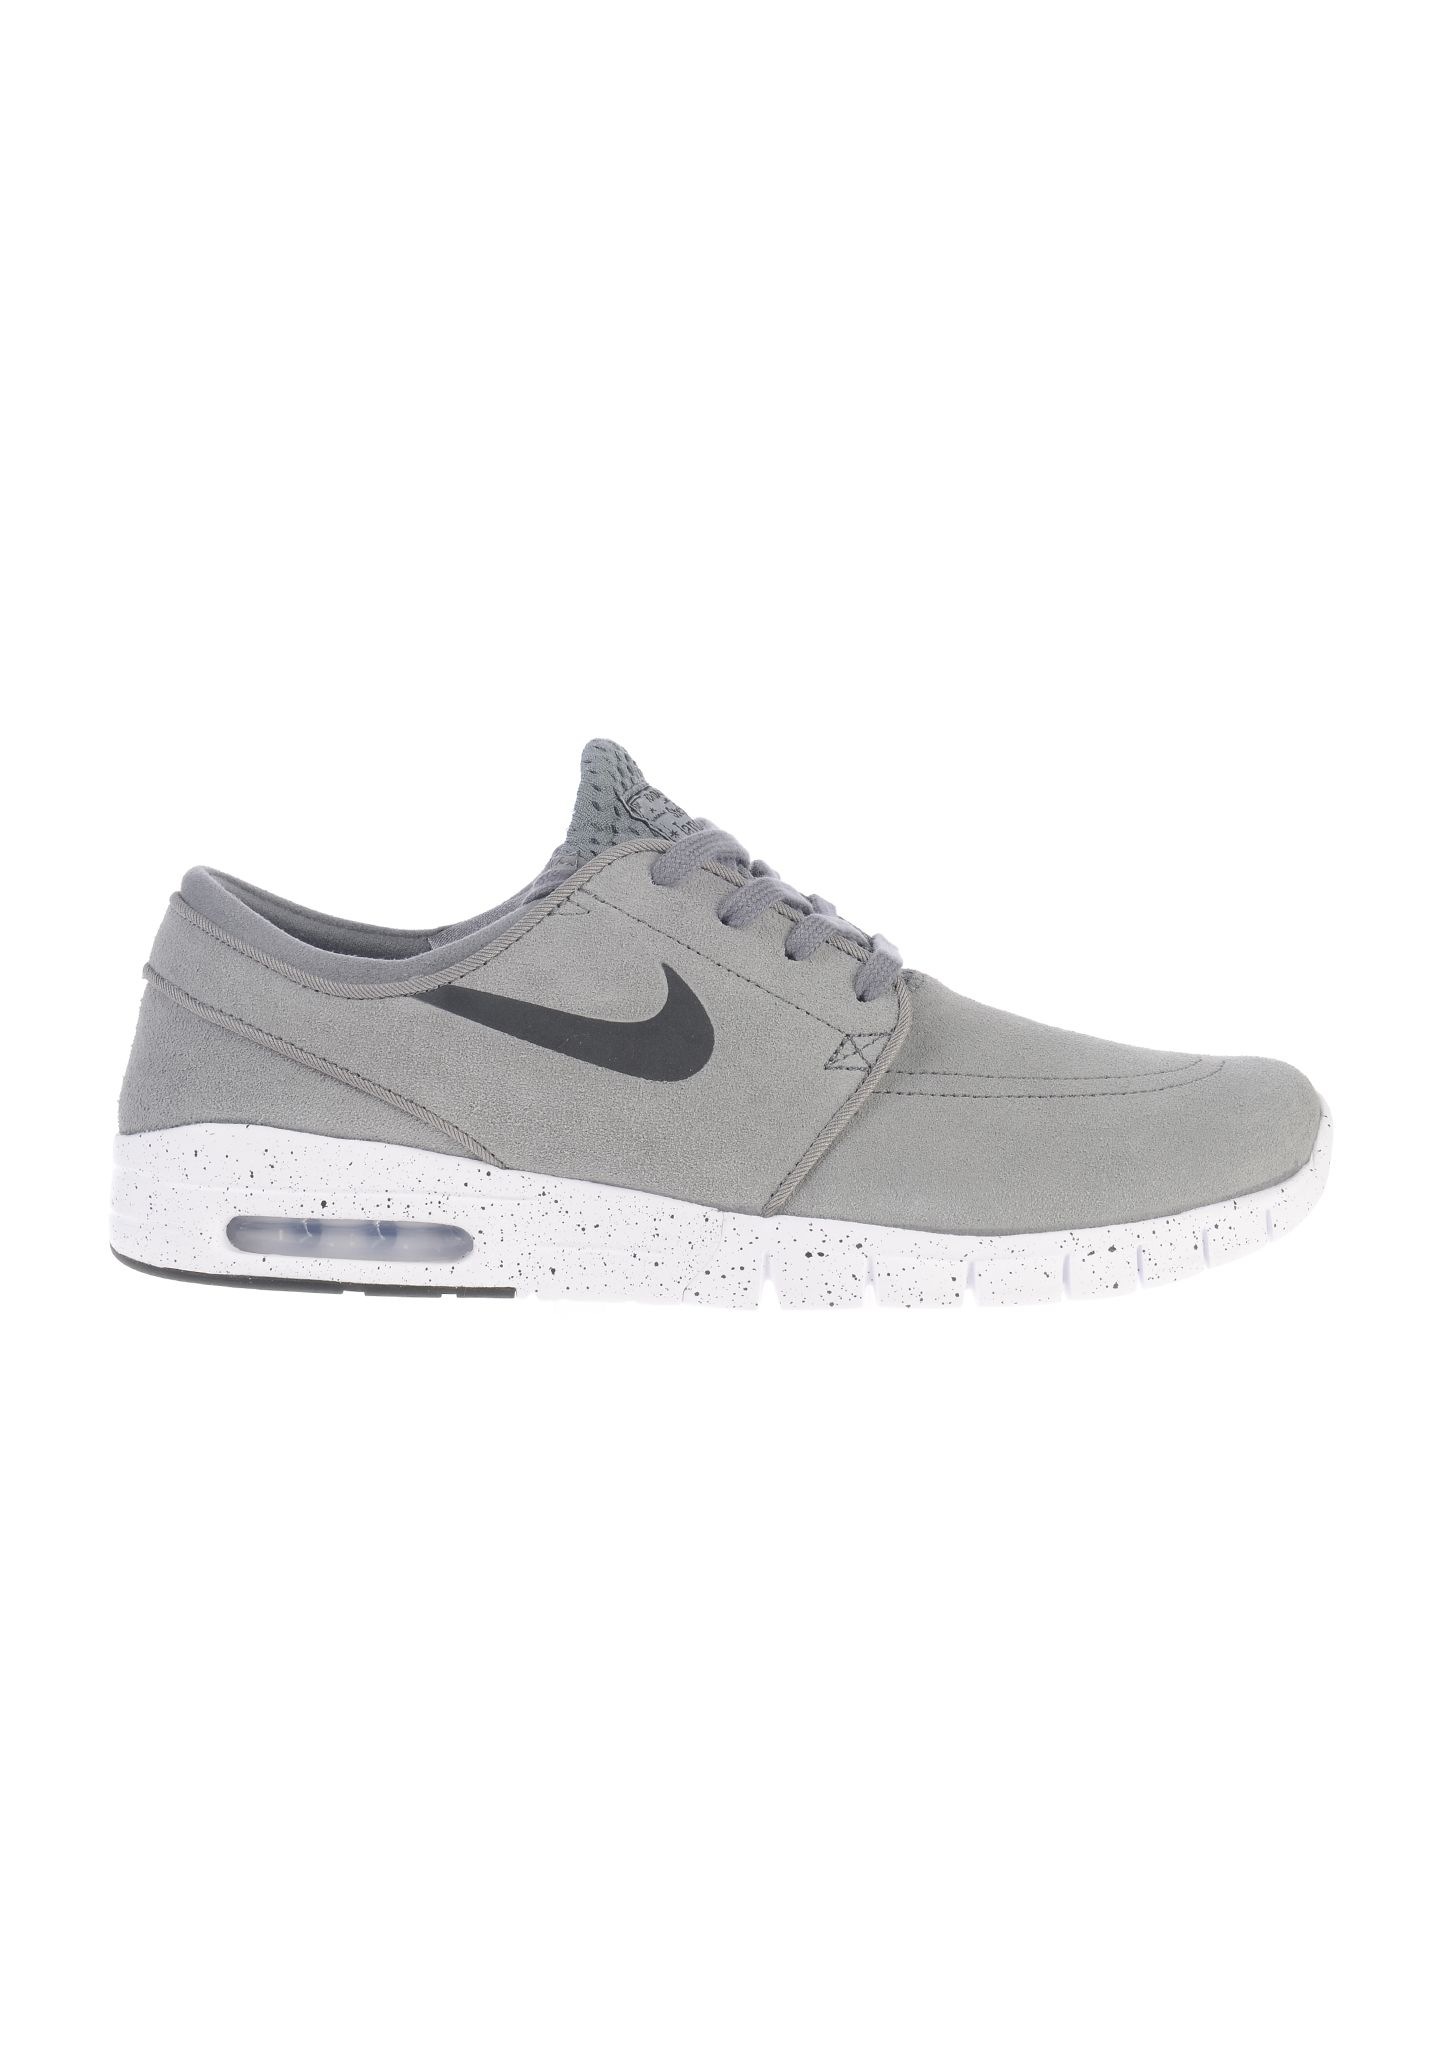 pretty nice 5dfce 90a62 NIKE SB Stefan Janoski Max L - Sneakers for Men - Grey - Pla